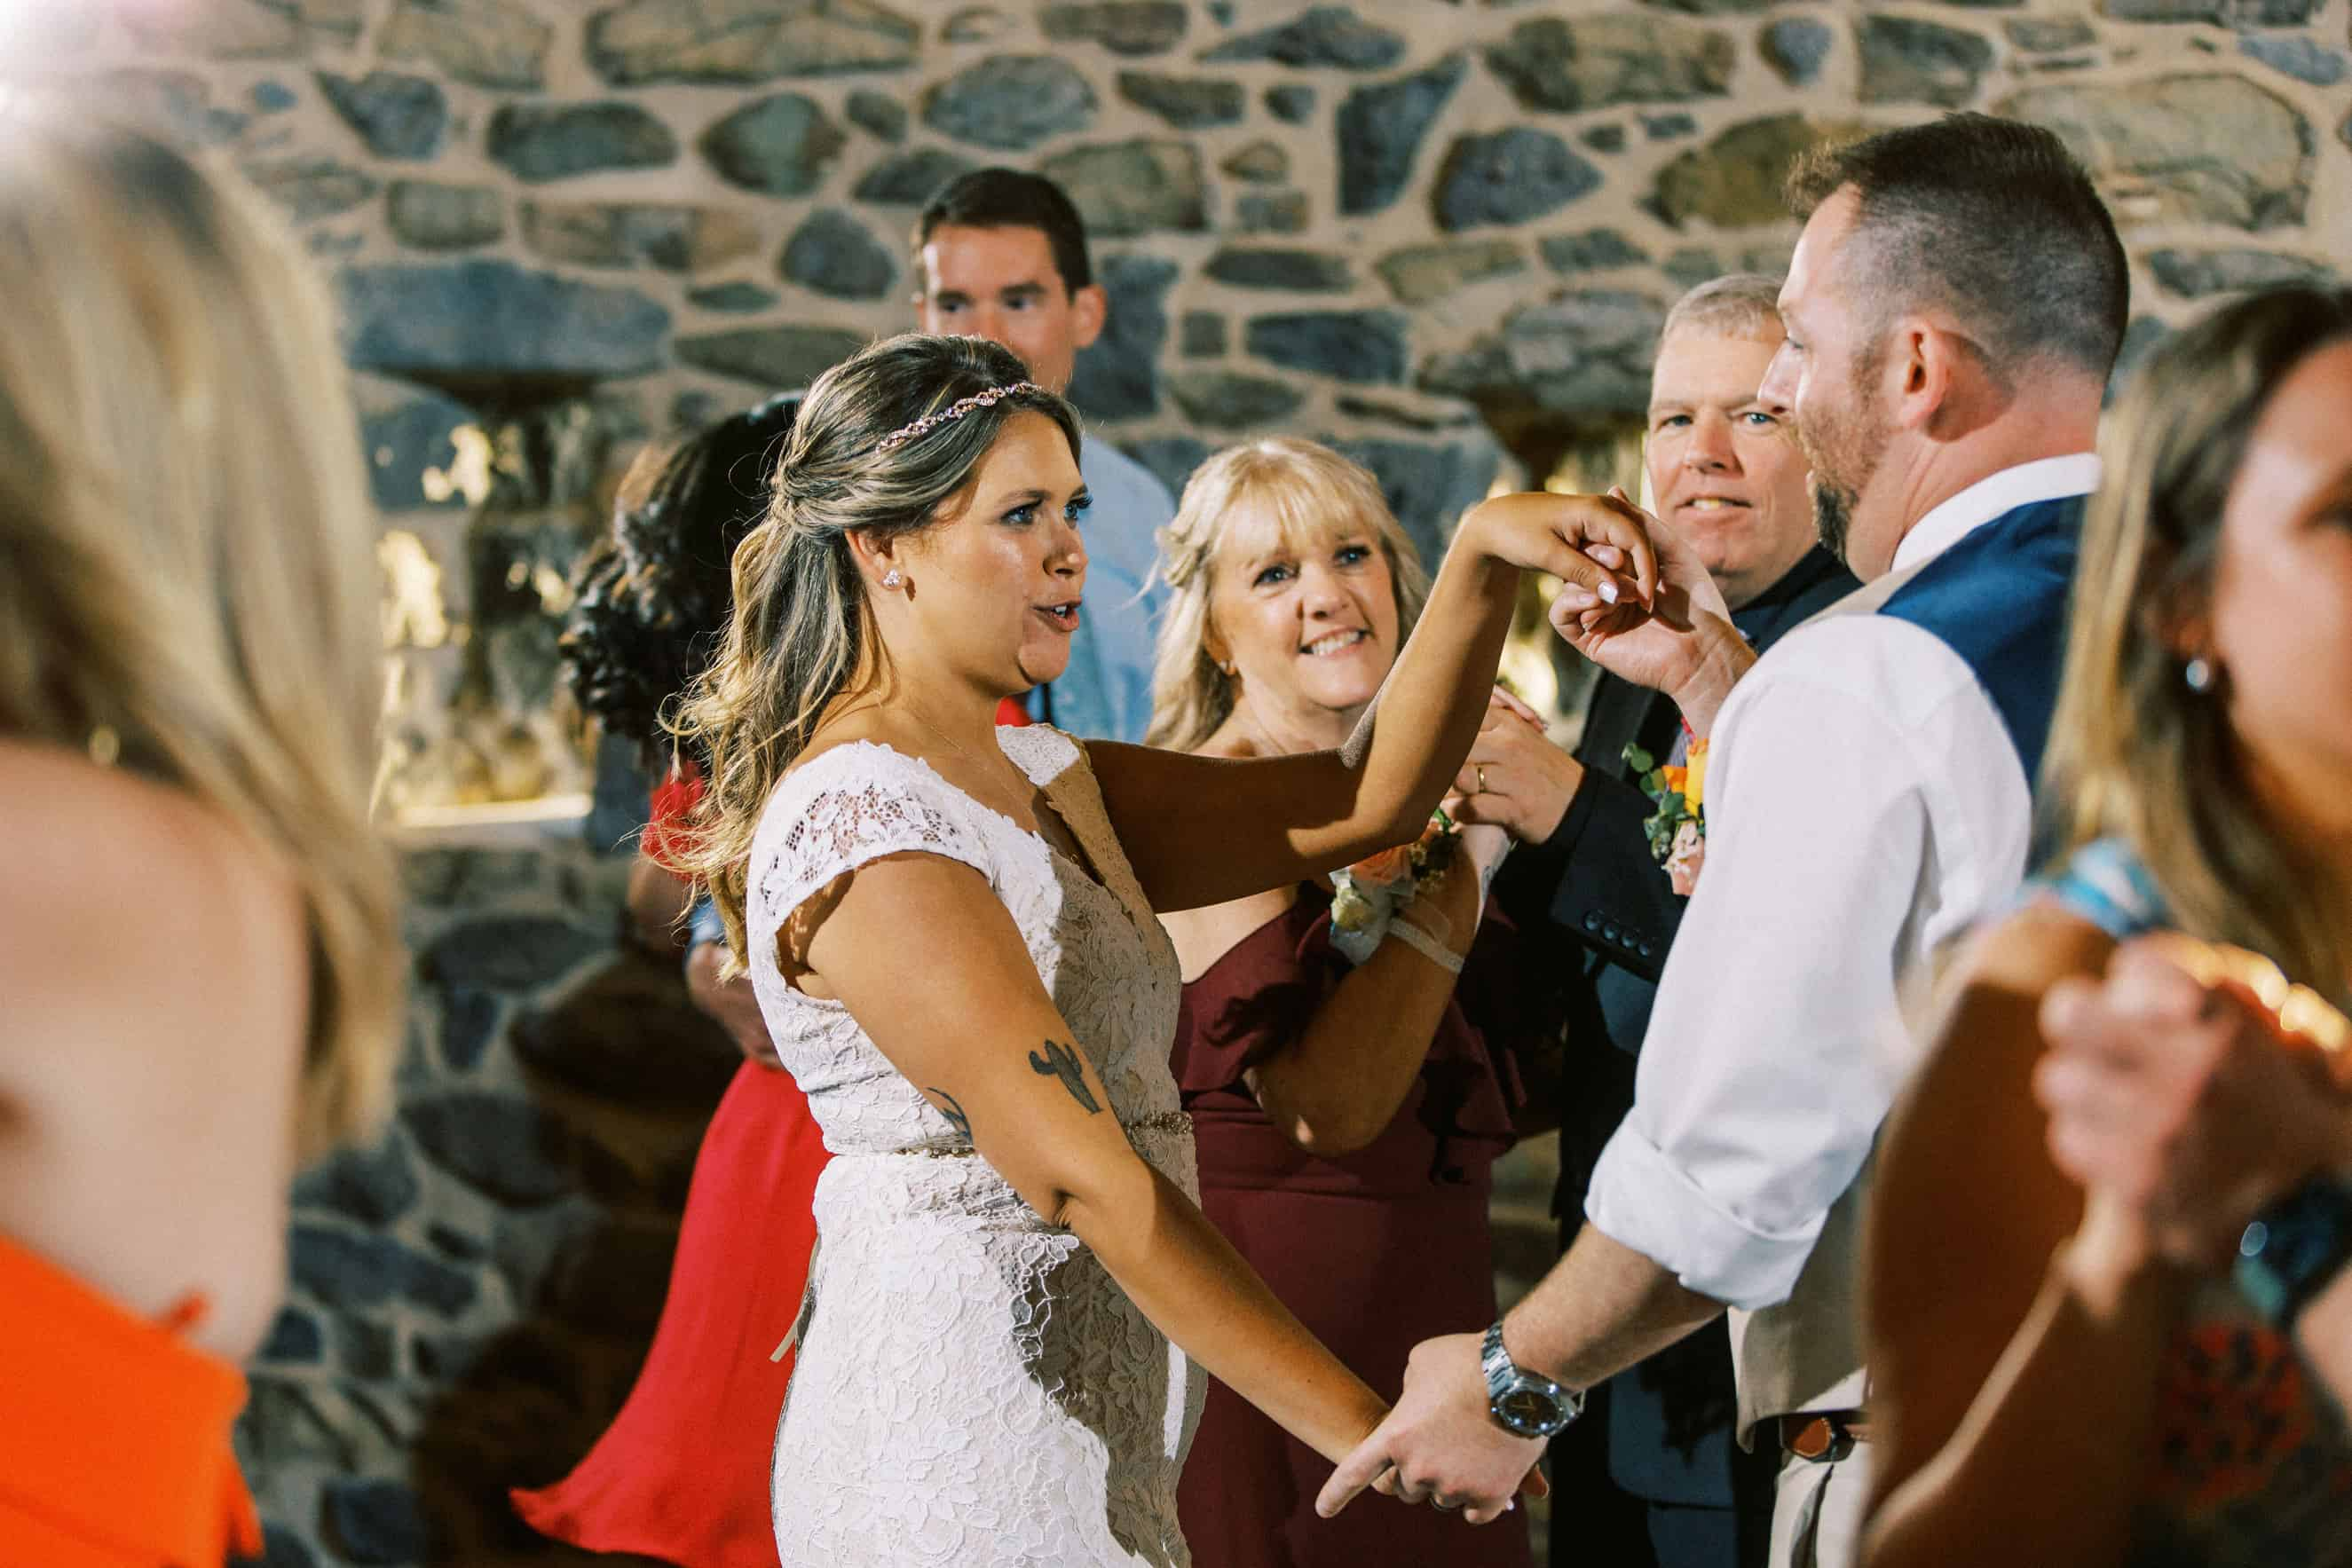 Harvest View at Hershey Farms Wedding Reception Pictures